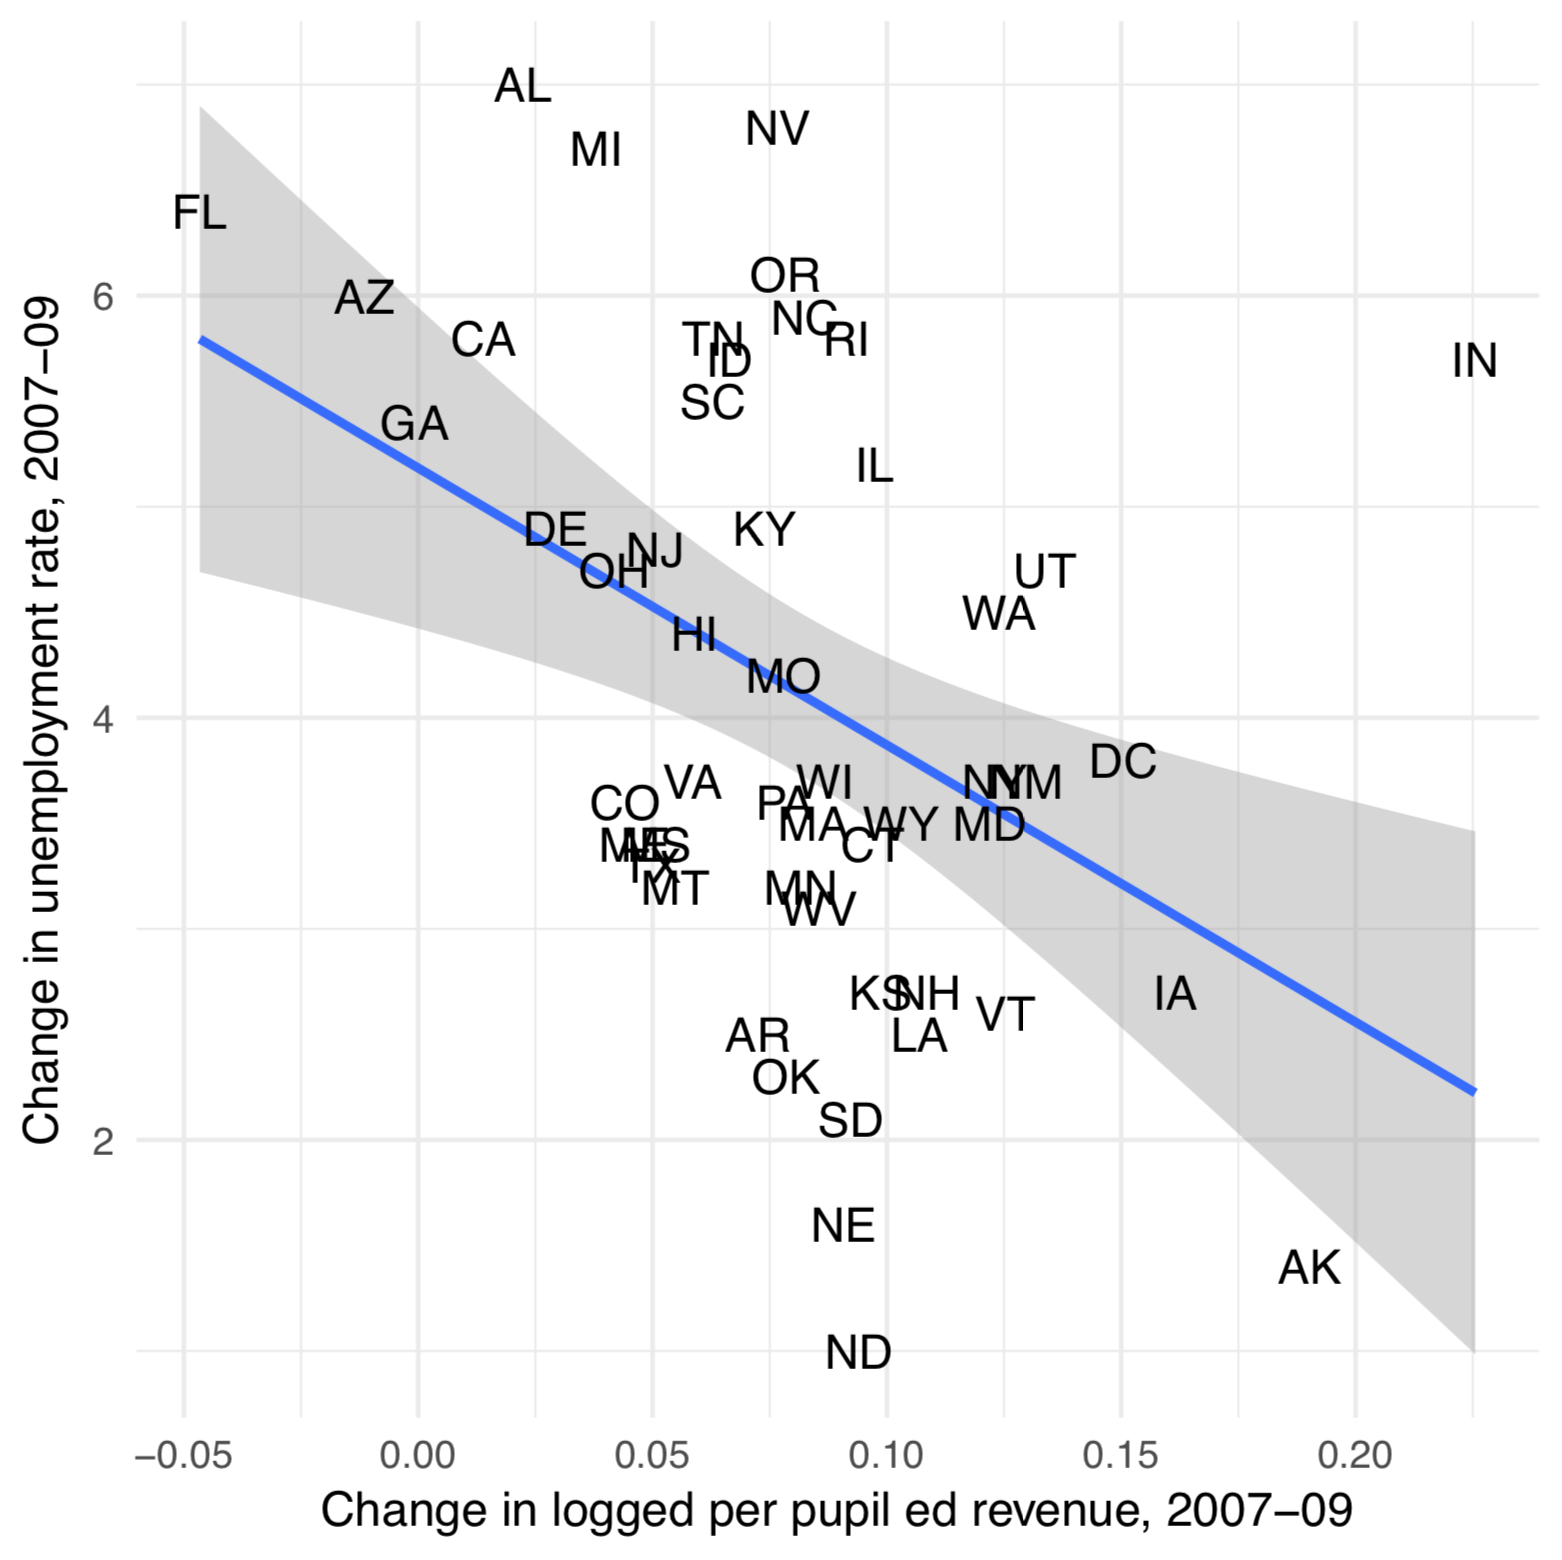 We exploit the exogenous shock to states' education budgets caused by the Great Recession to identify the effect of resources on vertical diffusion. Shown here is the Recession's effect on unemployment and the associated change in states' education budgets over the same period.